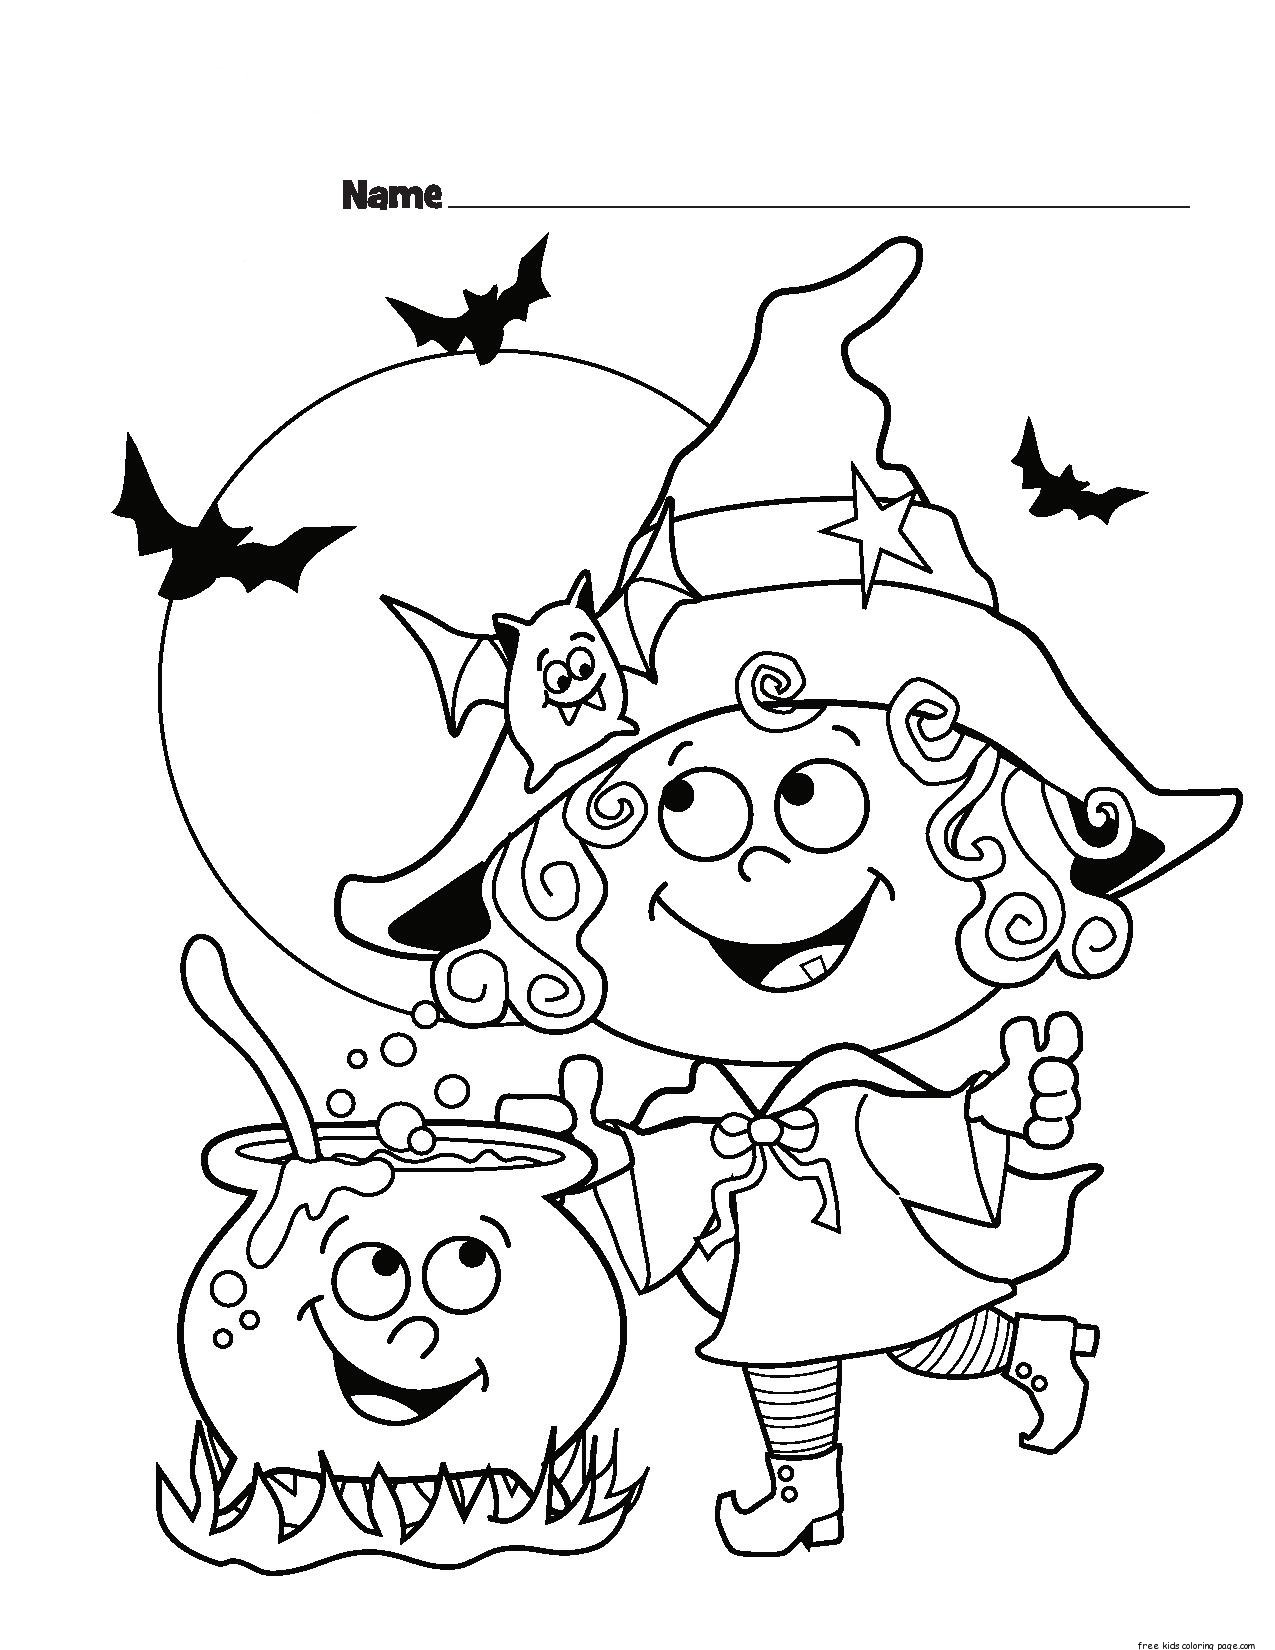 Childrens halloween witch costumes coloring page for for Halloween print out coloring pages